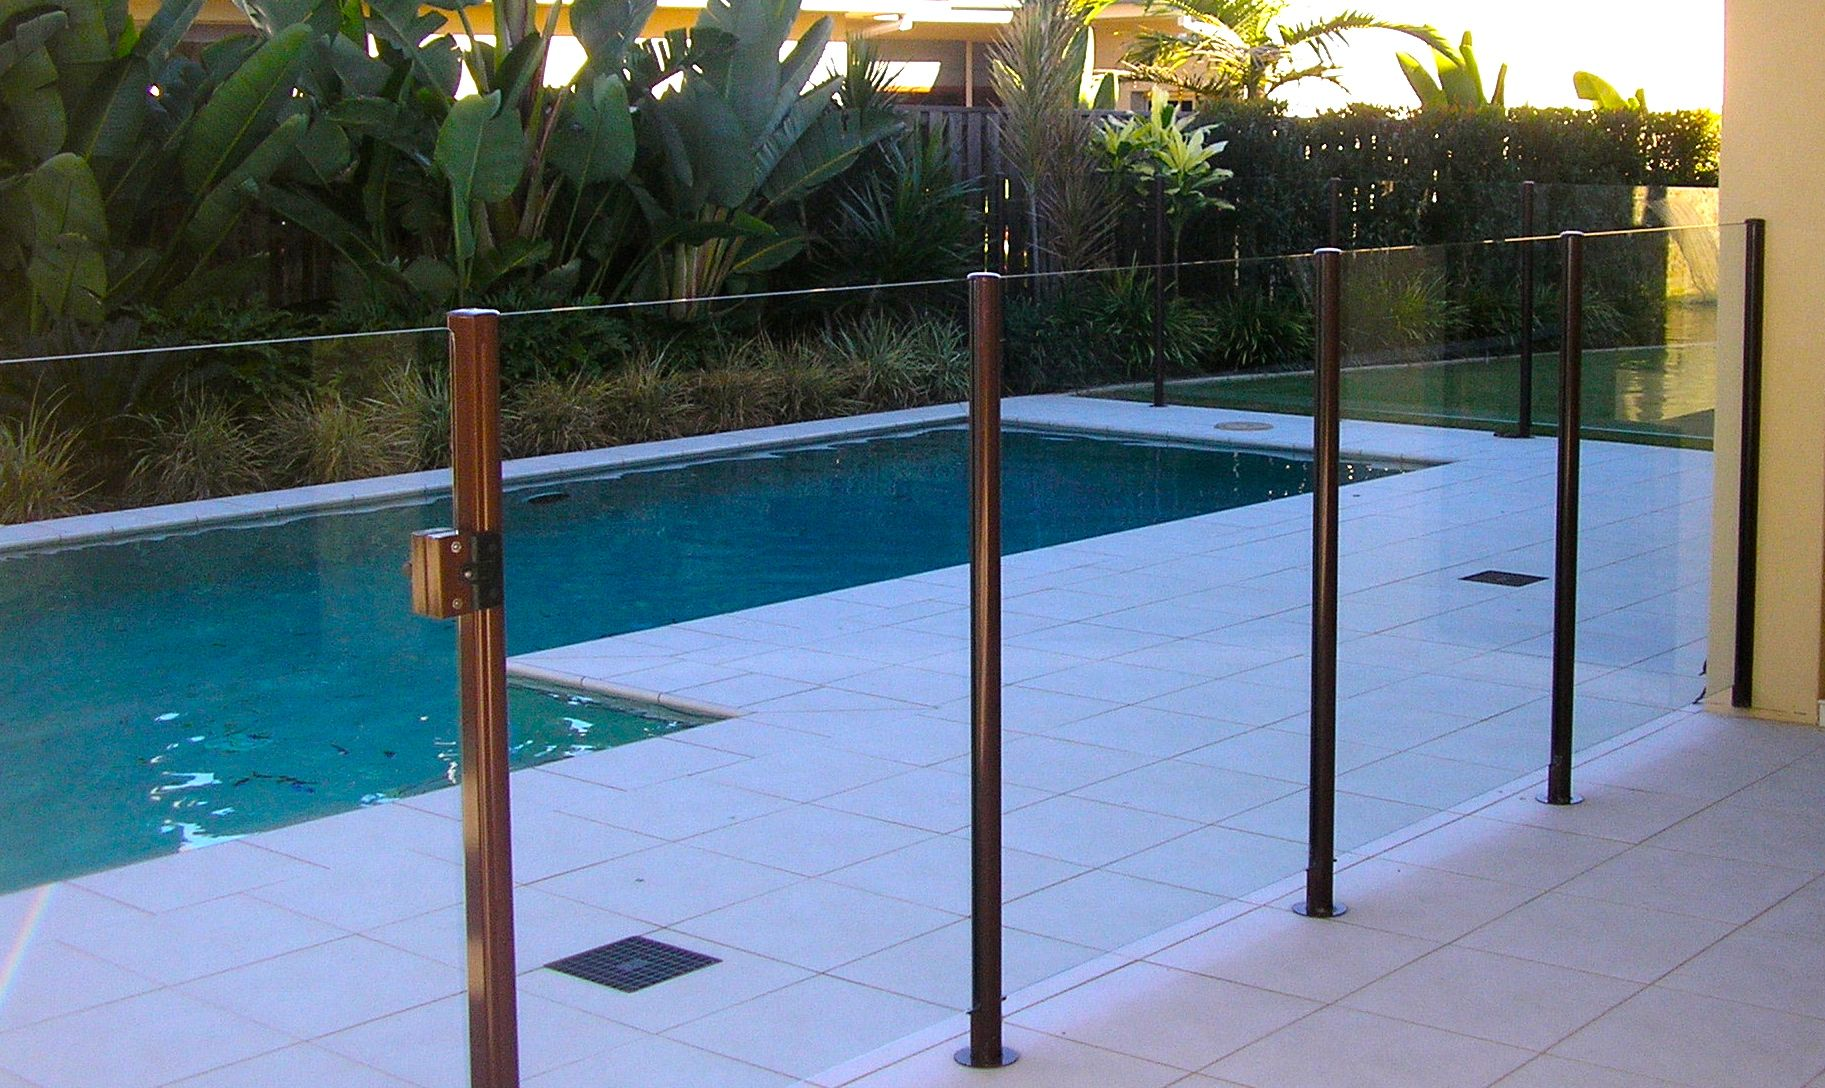 Semiframeless Glass Pool Fencing Stainless Steel Railing Glass Pool Fencing Pool Fence